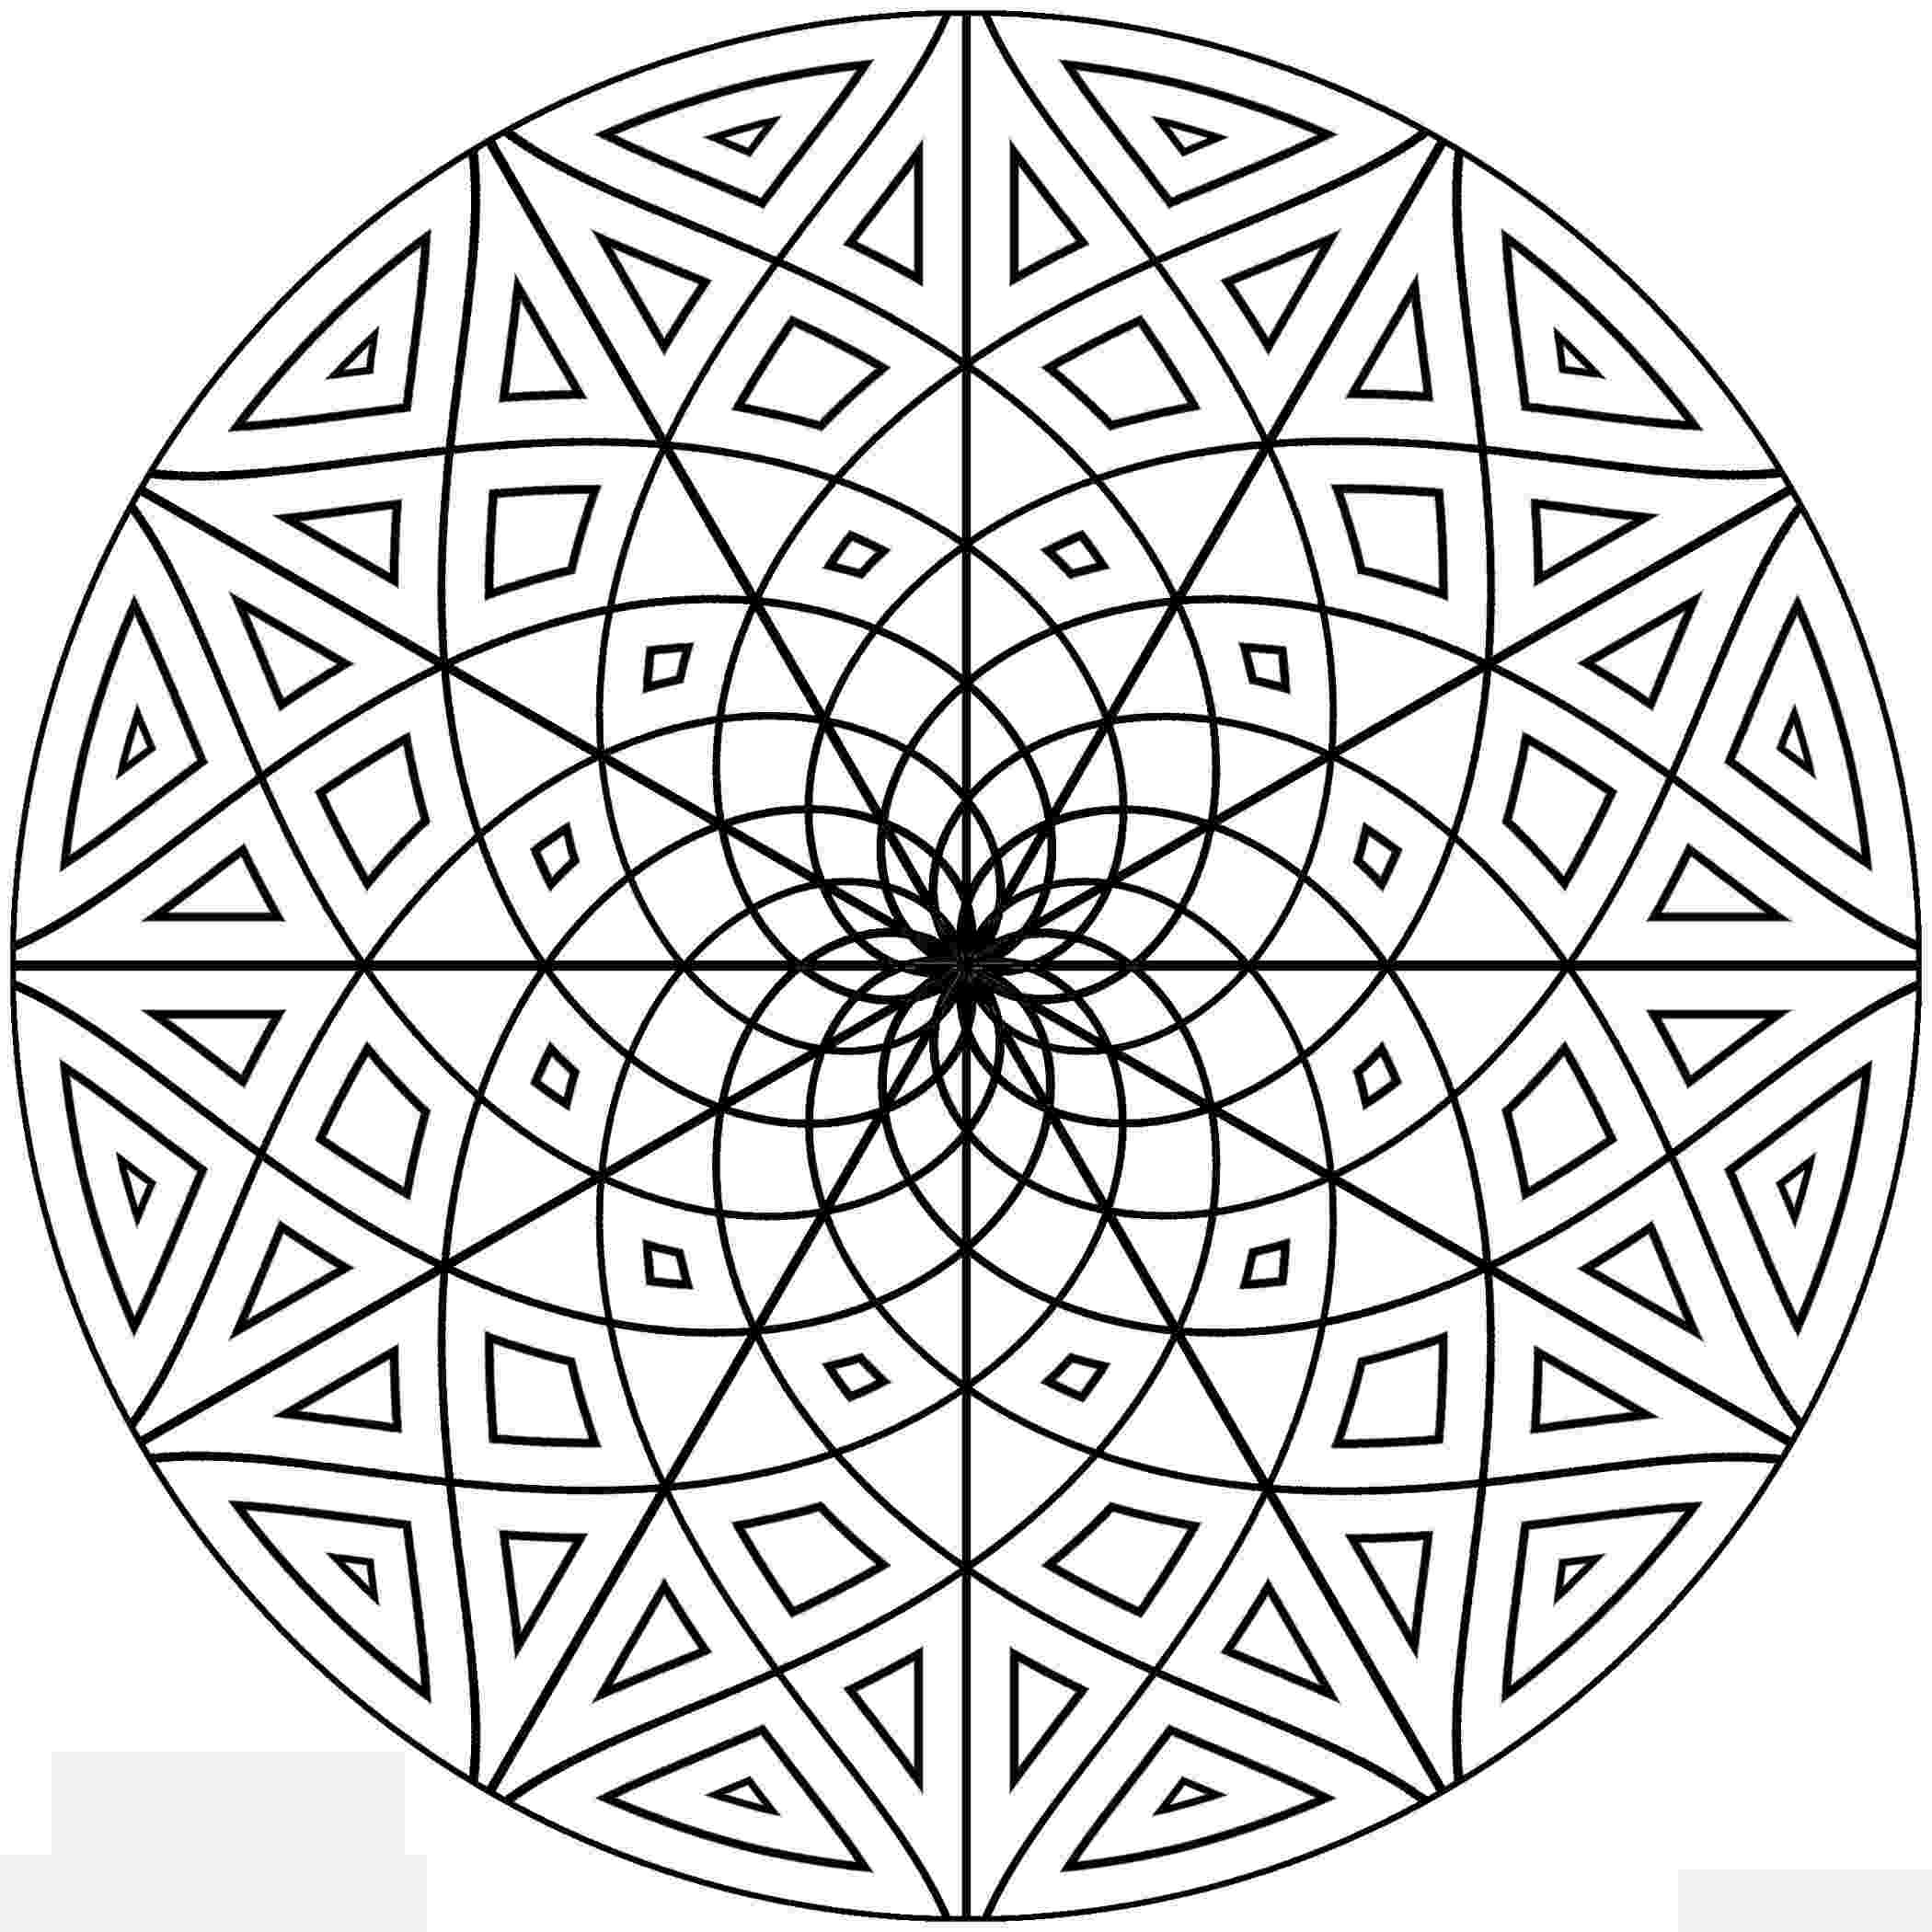 colouring sheets patterns colouring designs thelinoprinter patterns sheets colouring